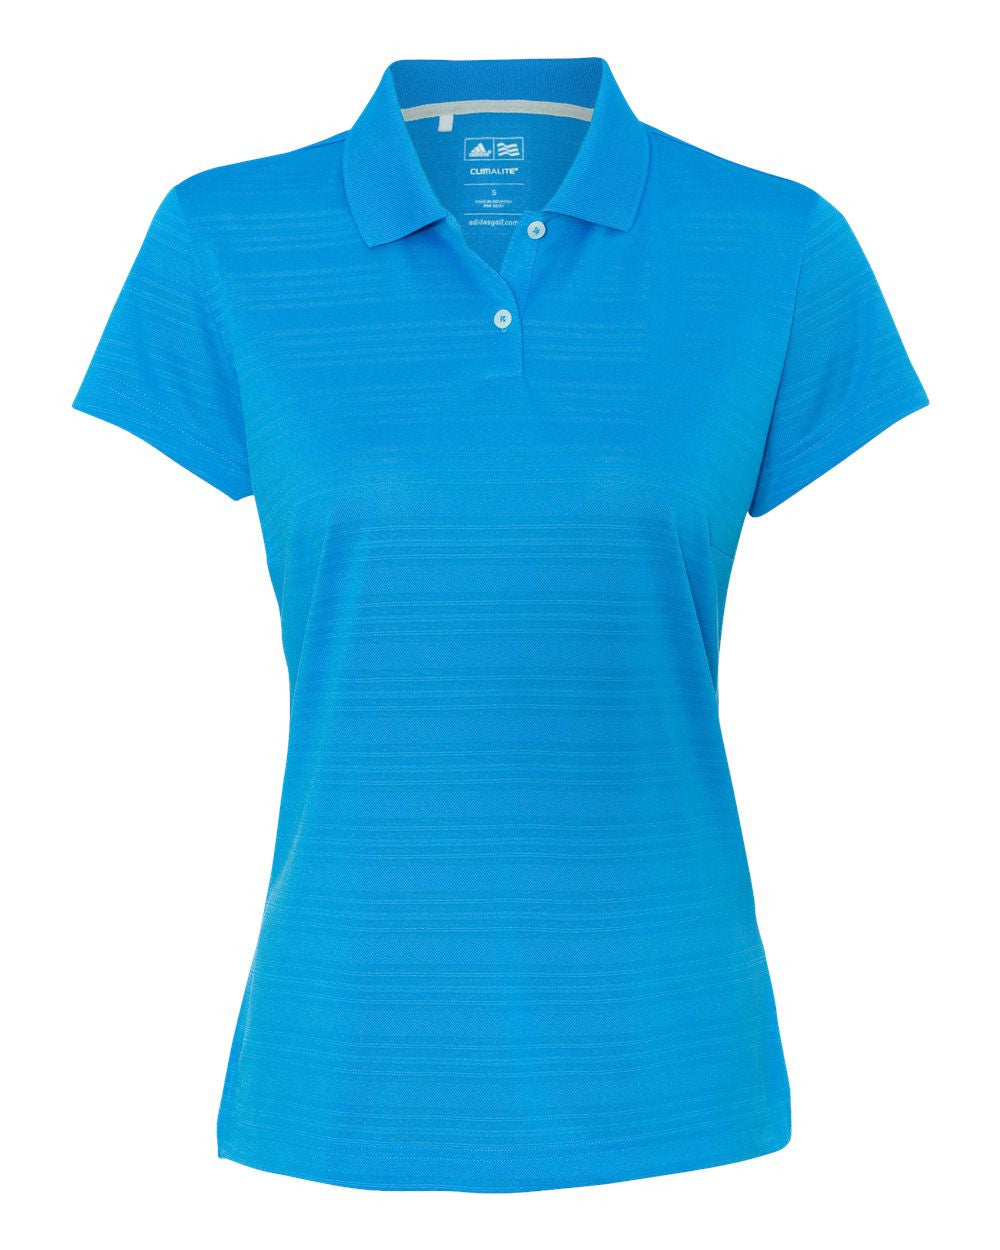 Womens Textured Polos by Adidas